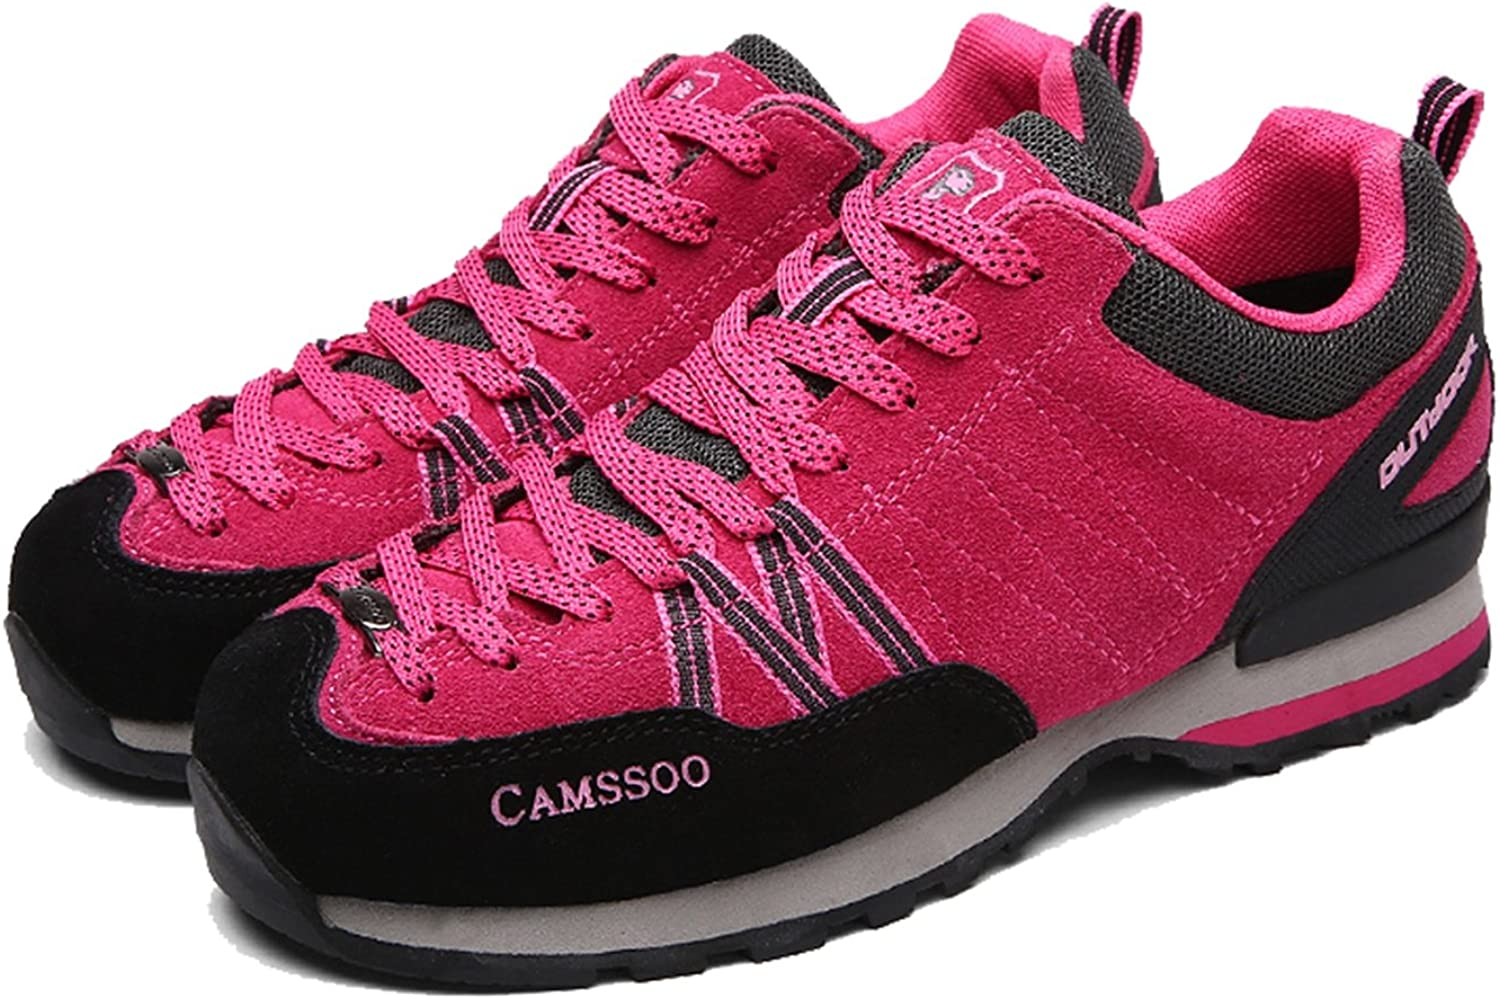 CAMSSOO Womens Outdoors Suede Leather Breathable Anti-Slip Hiking Walking Running shoes